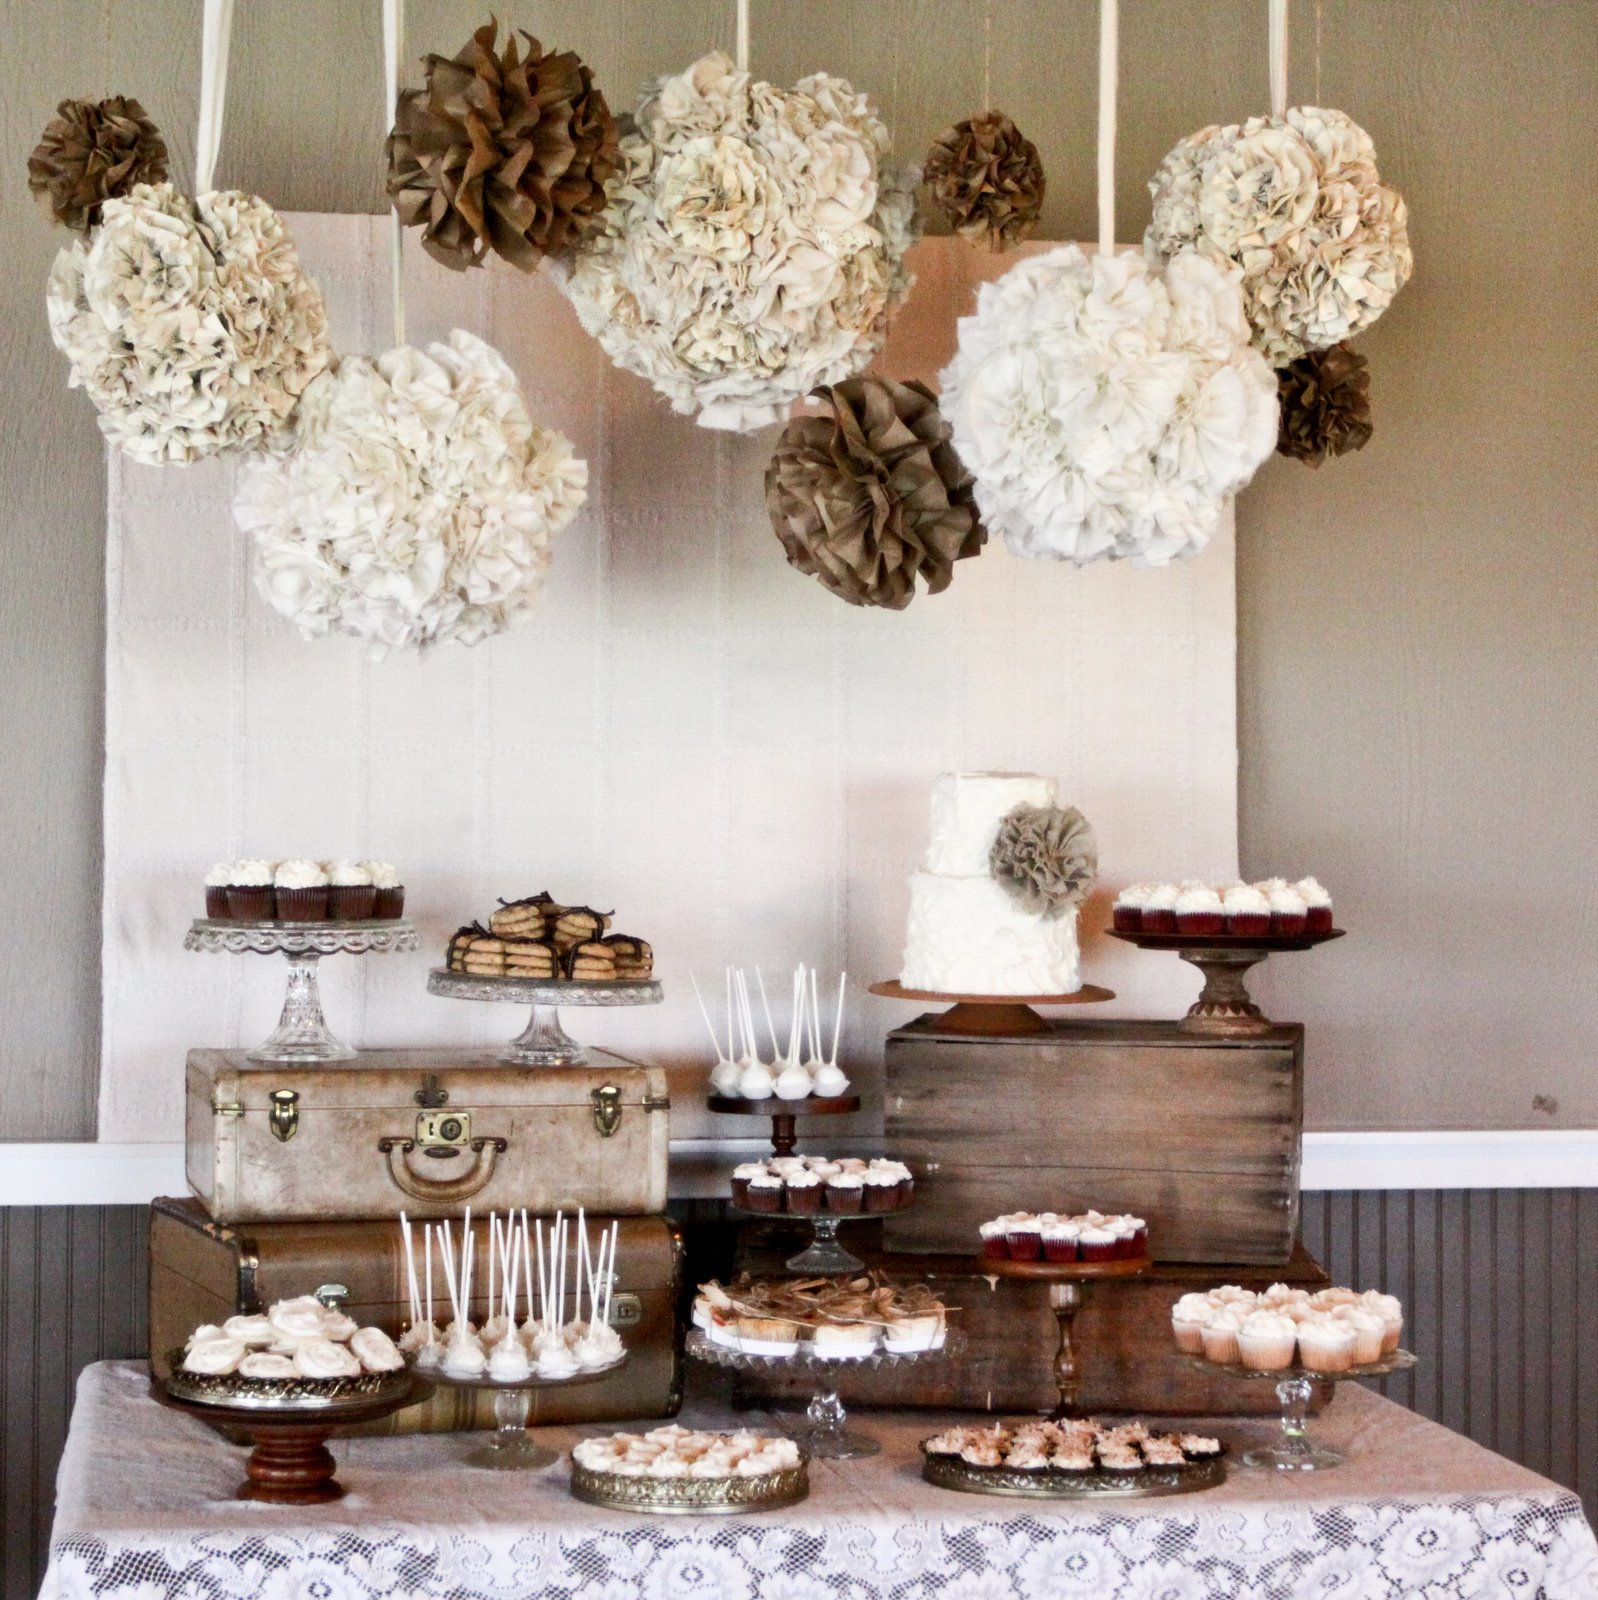 Wedding Dessert Table: Organizitpartystyling: Wedding Dessert Table Collection